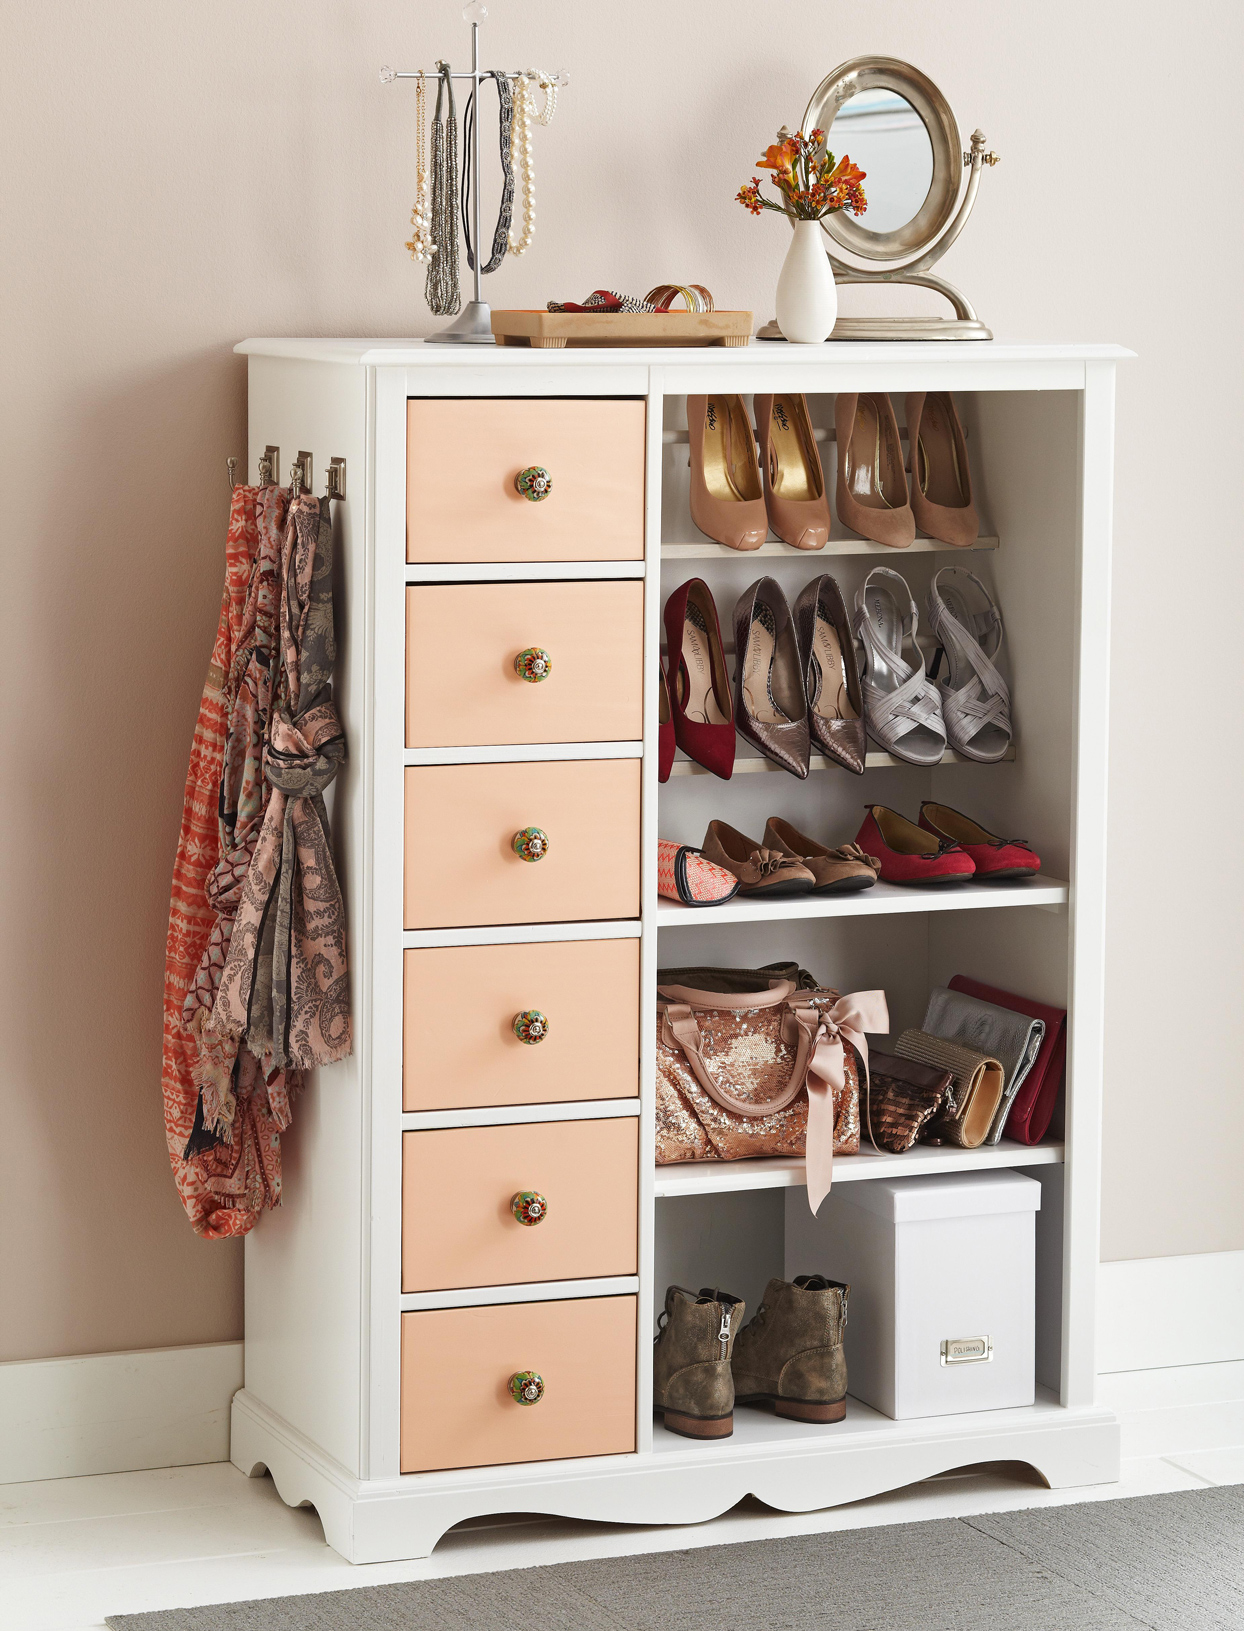 DIY Shoe Storage